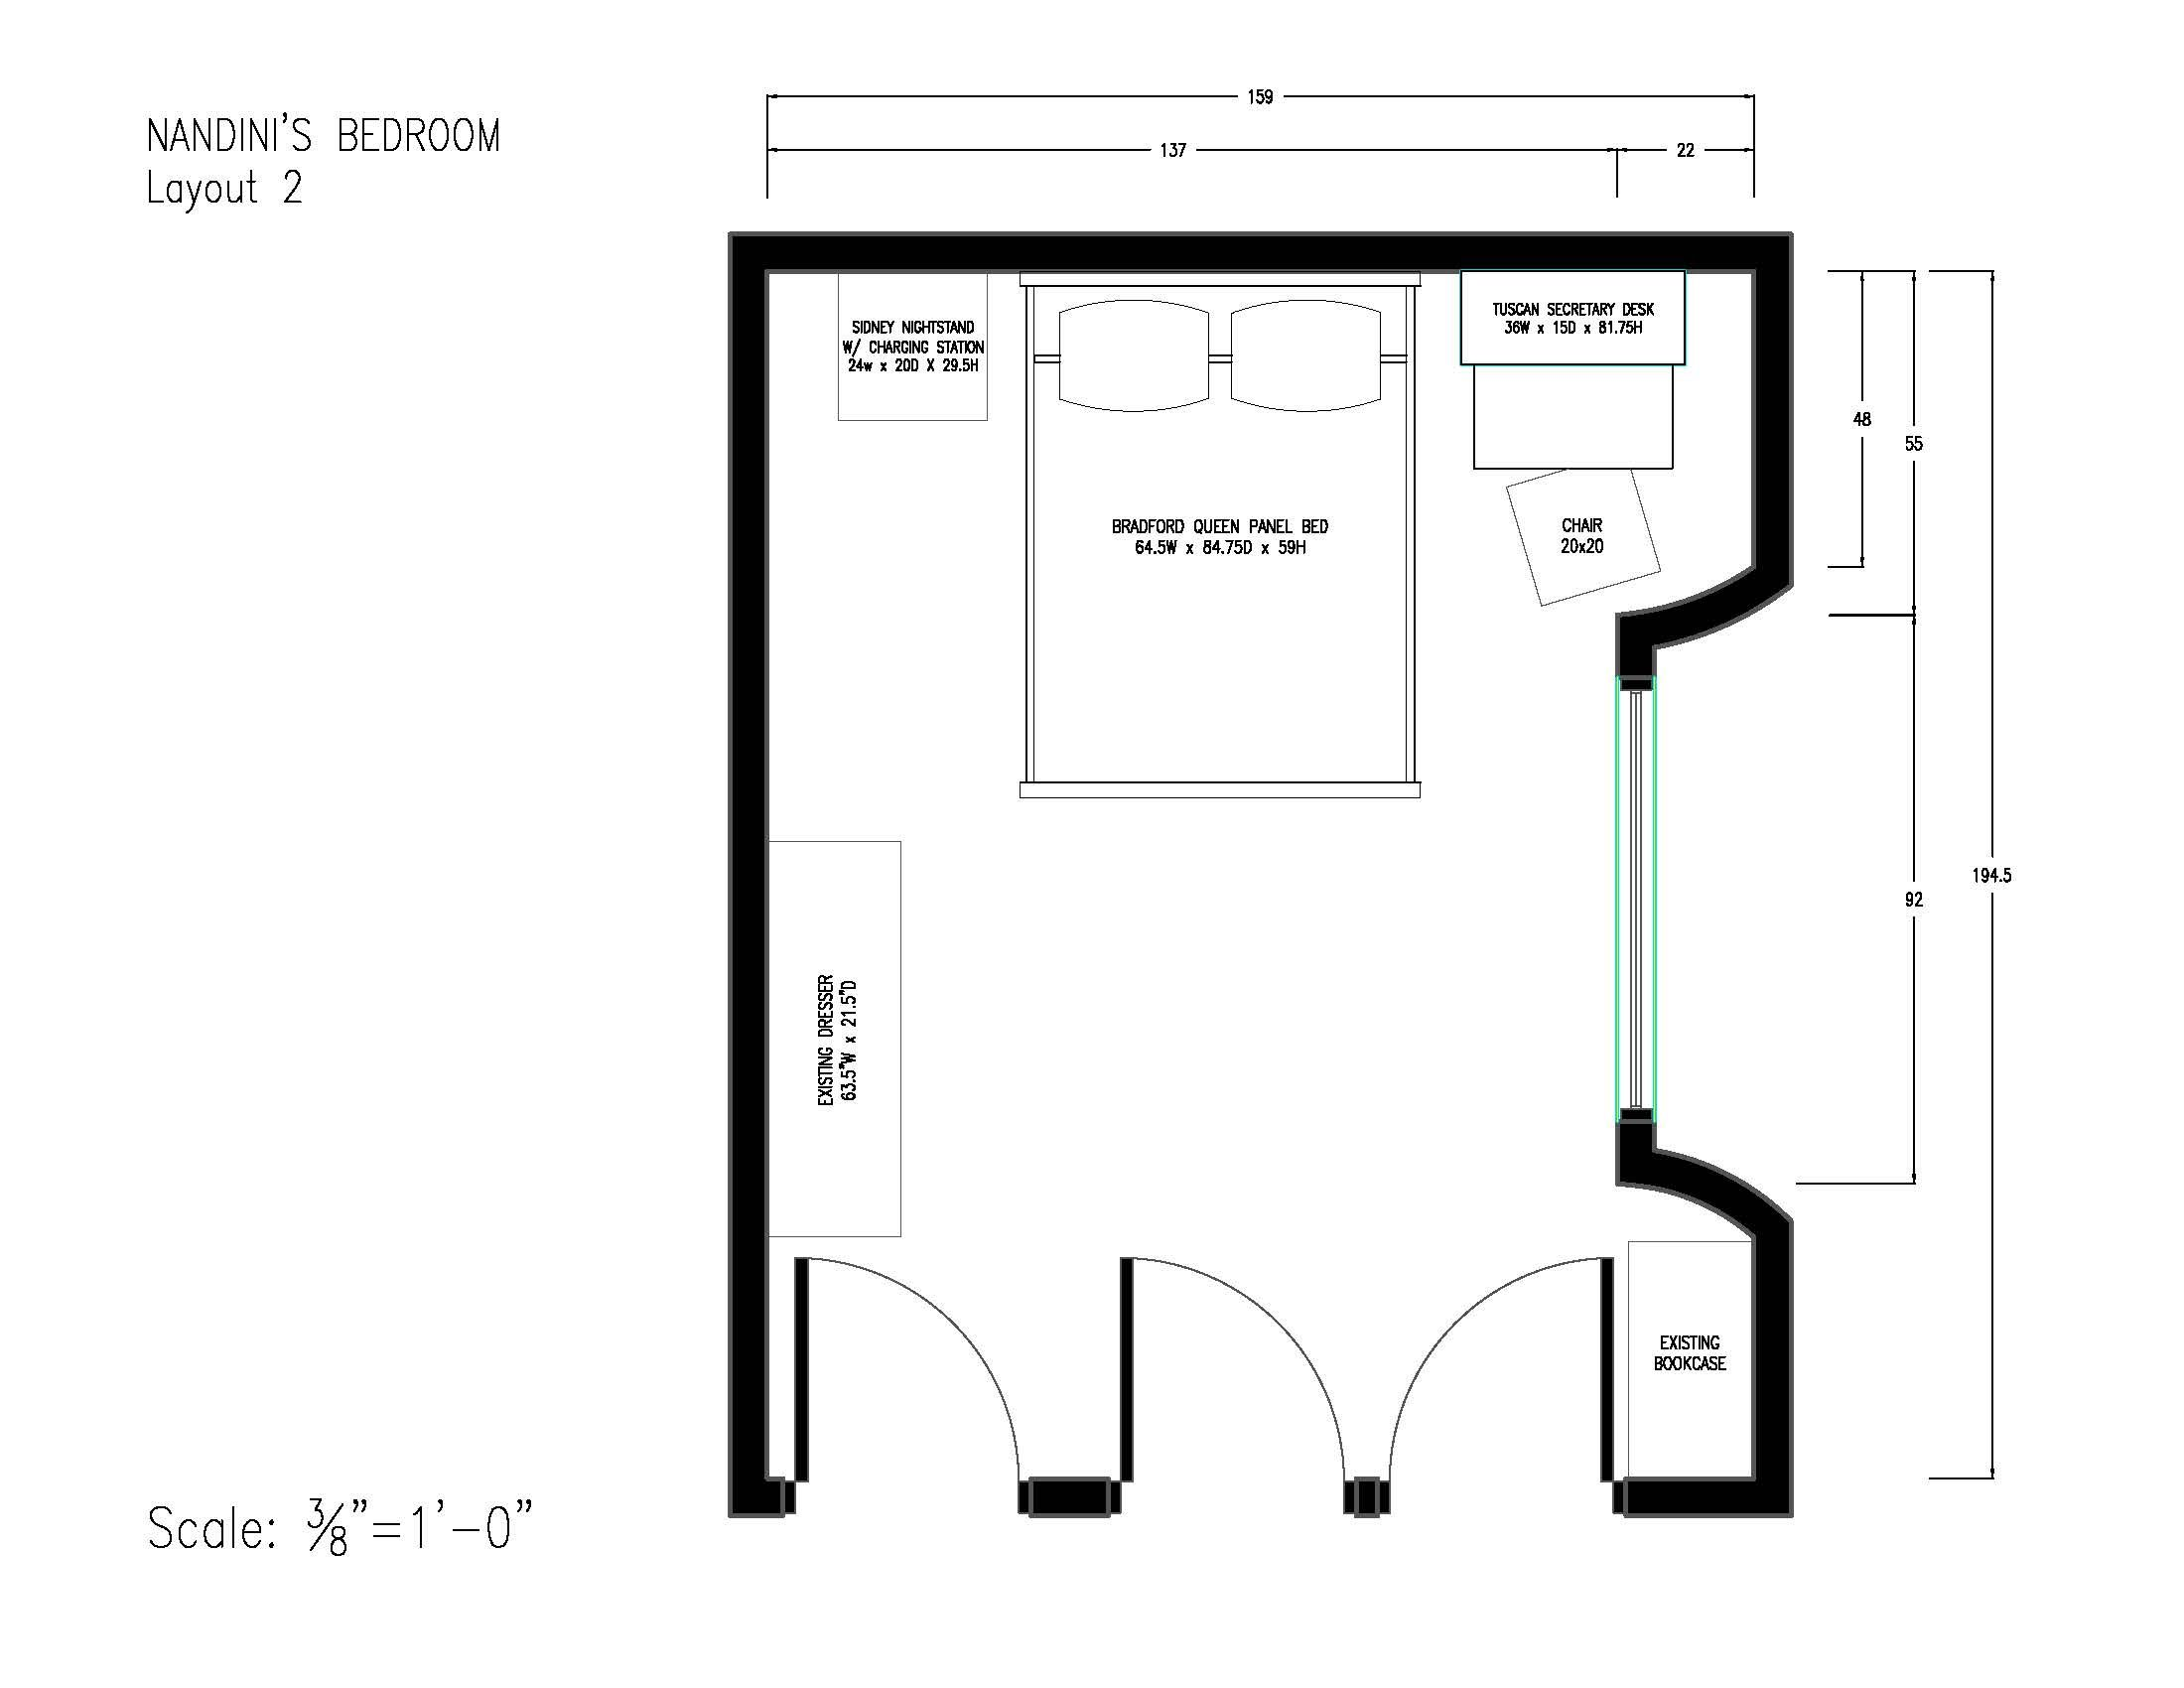 layout 2 - 10/11/17 | Bedroom layouts, Layout, Tall shelves